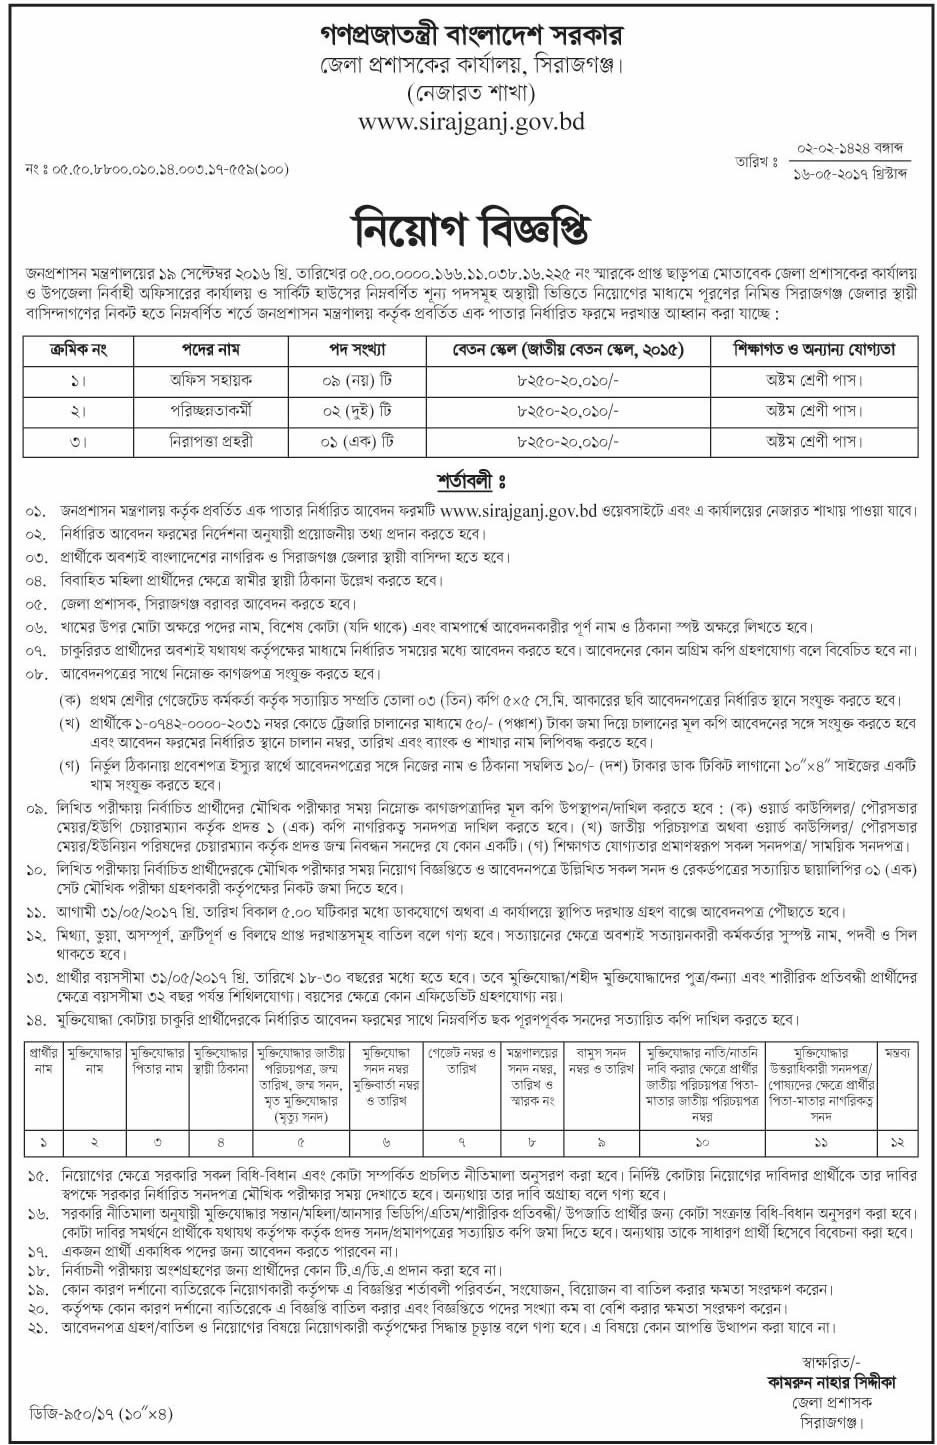 Sirajganj Deputy Commissioner's Office Job Circular 2017